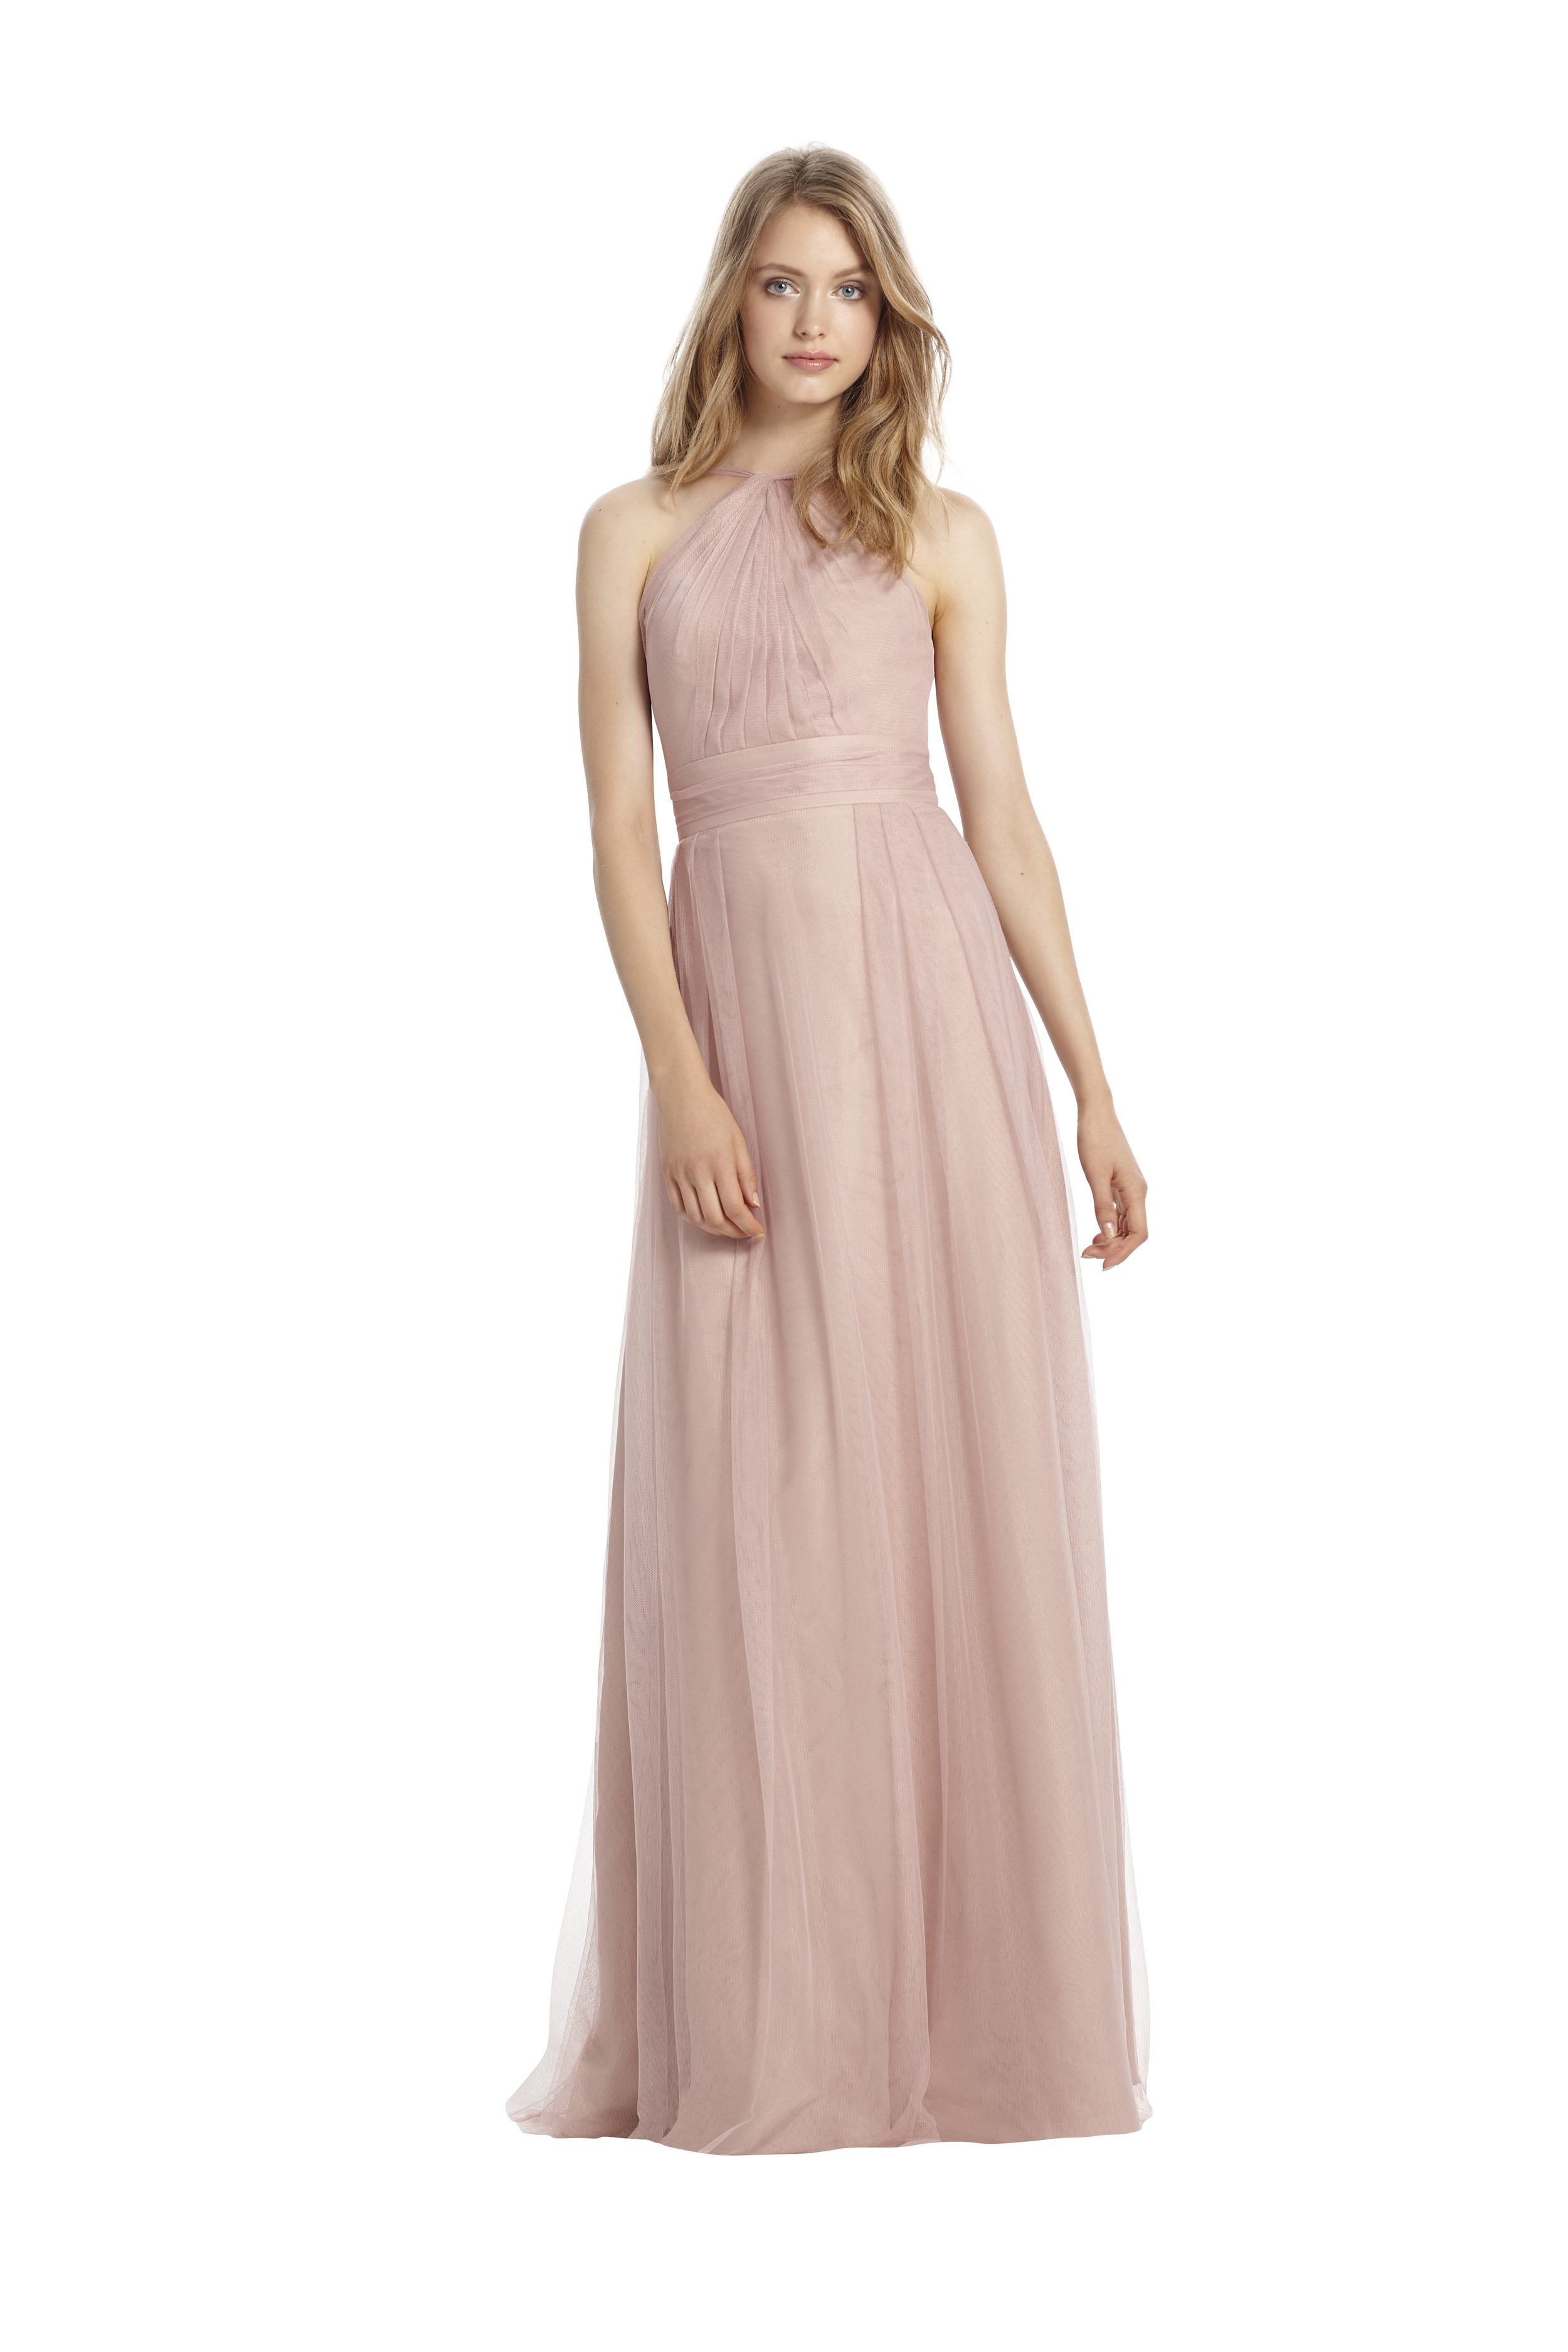 Monique Lhuillier 'Emery' Shell Tulle -